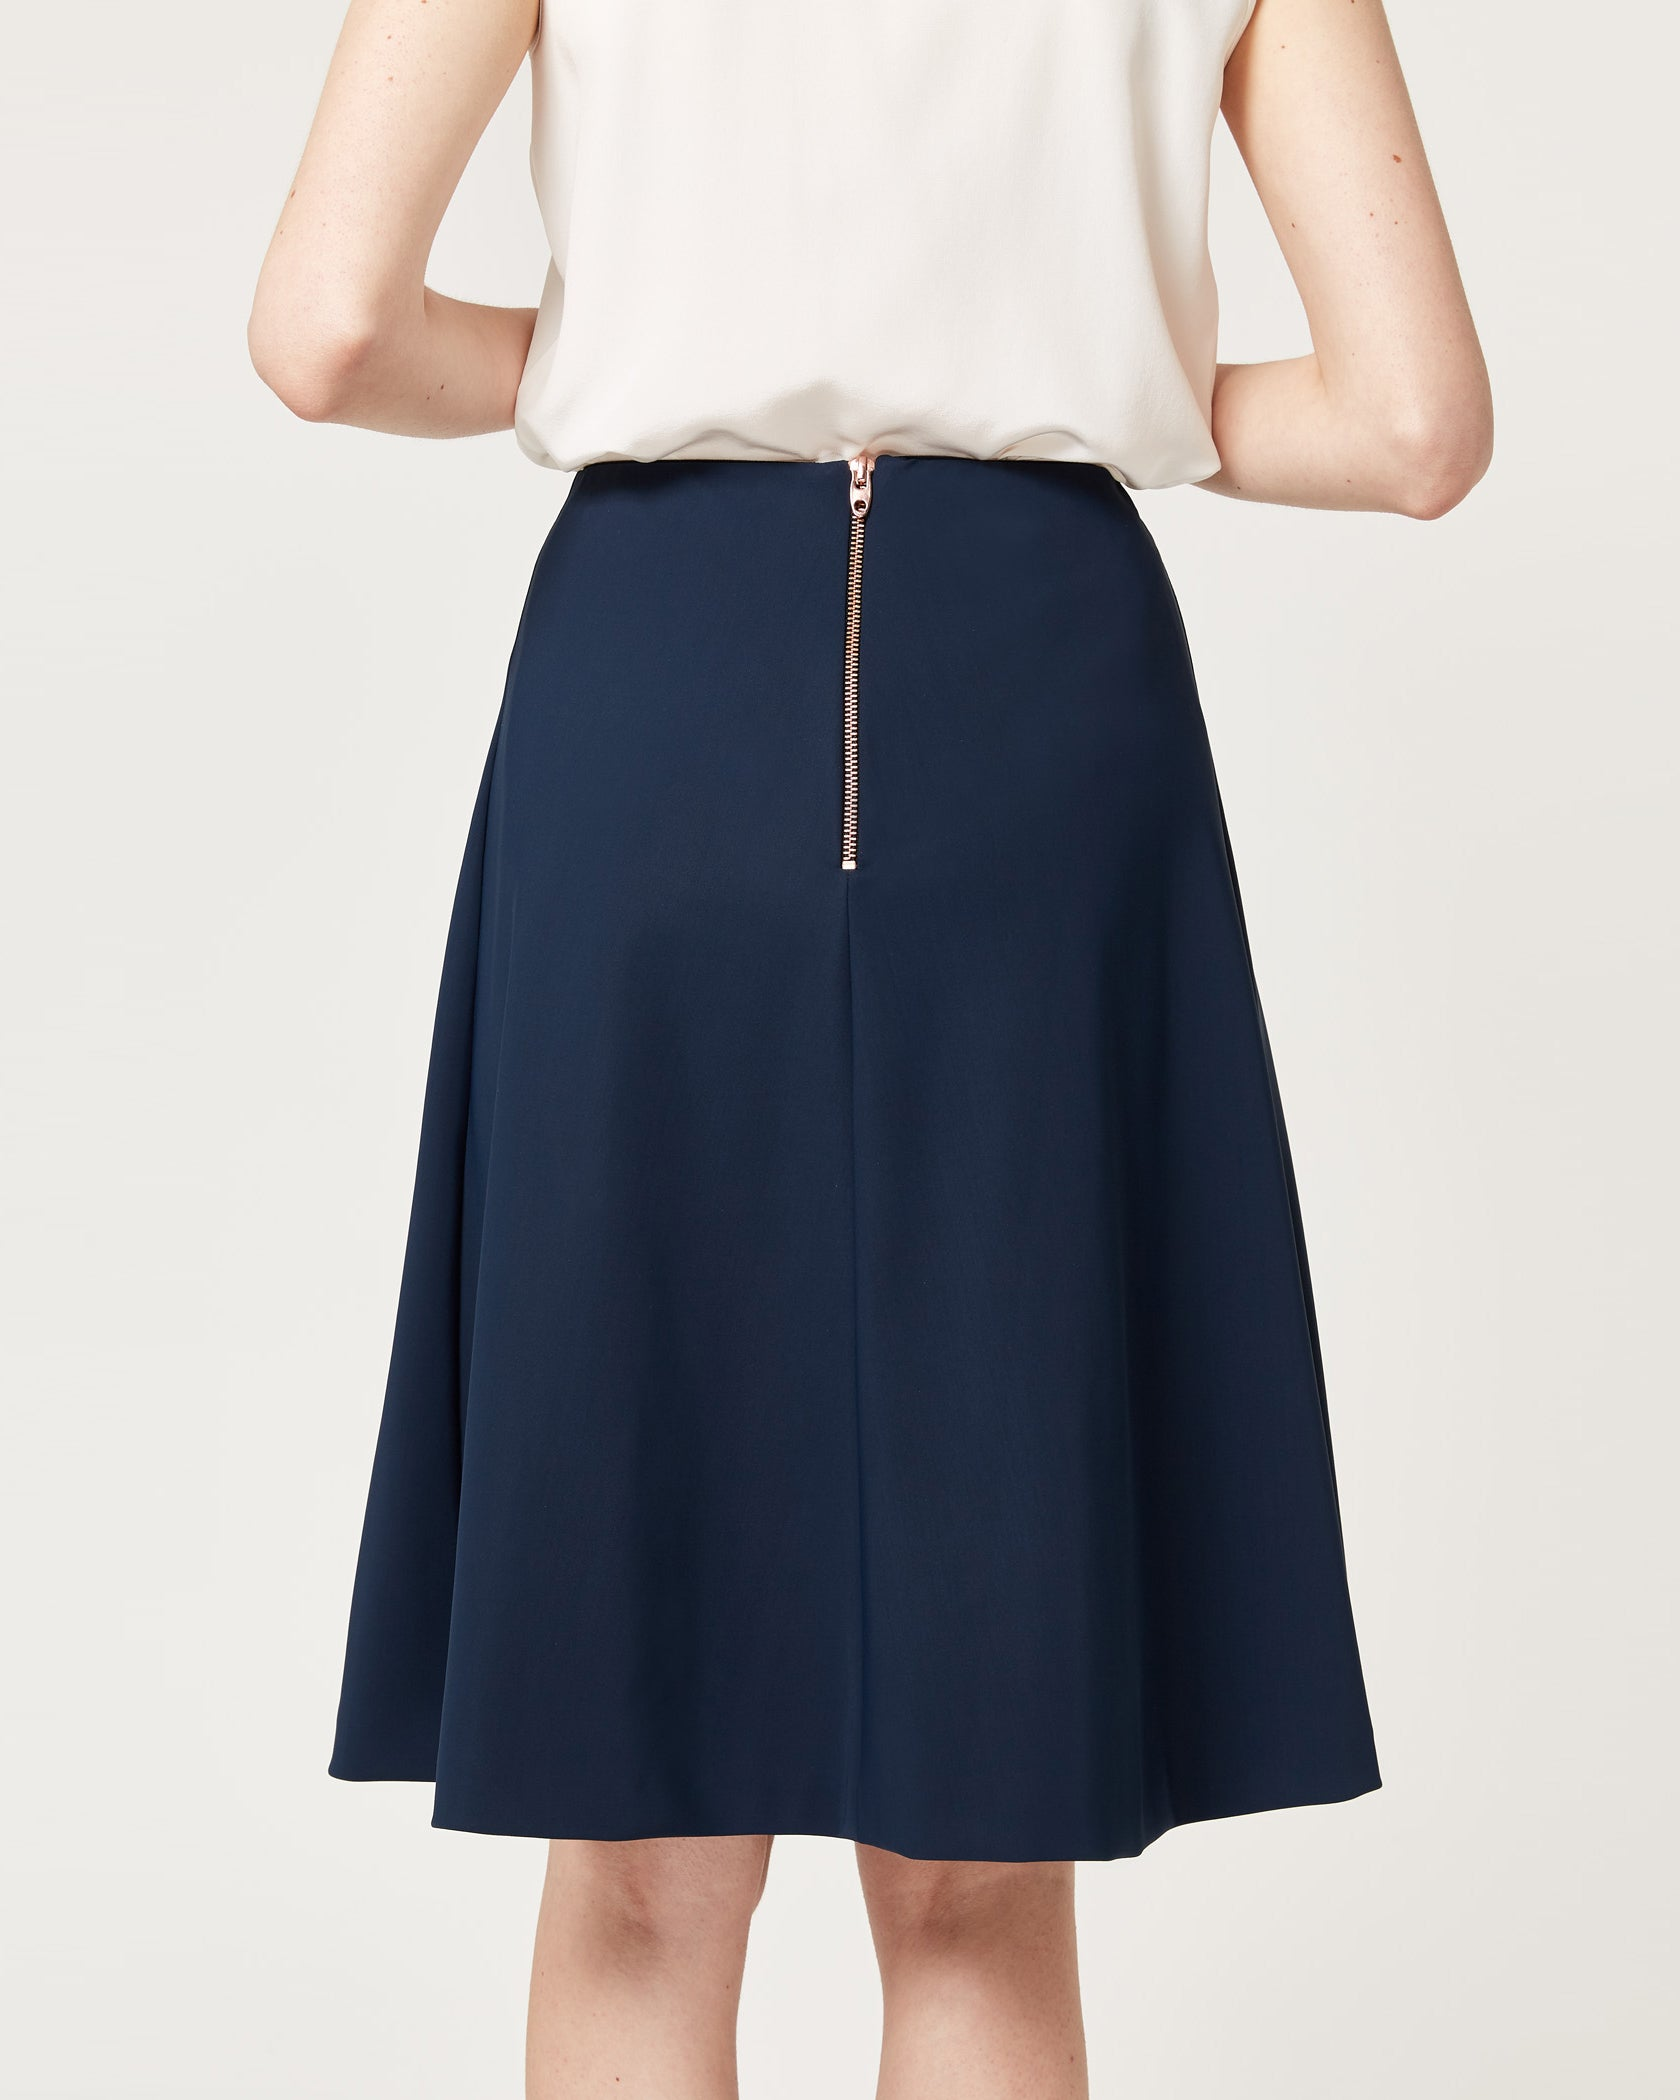 Step To It Skirt Regatta Navy